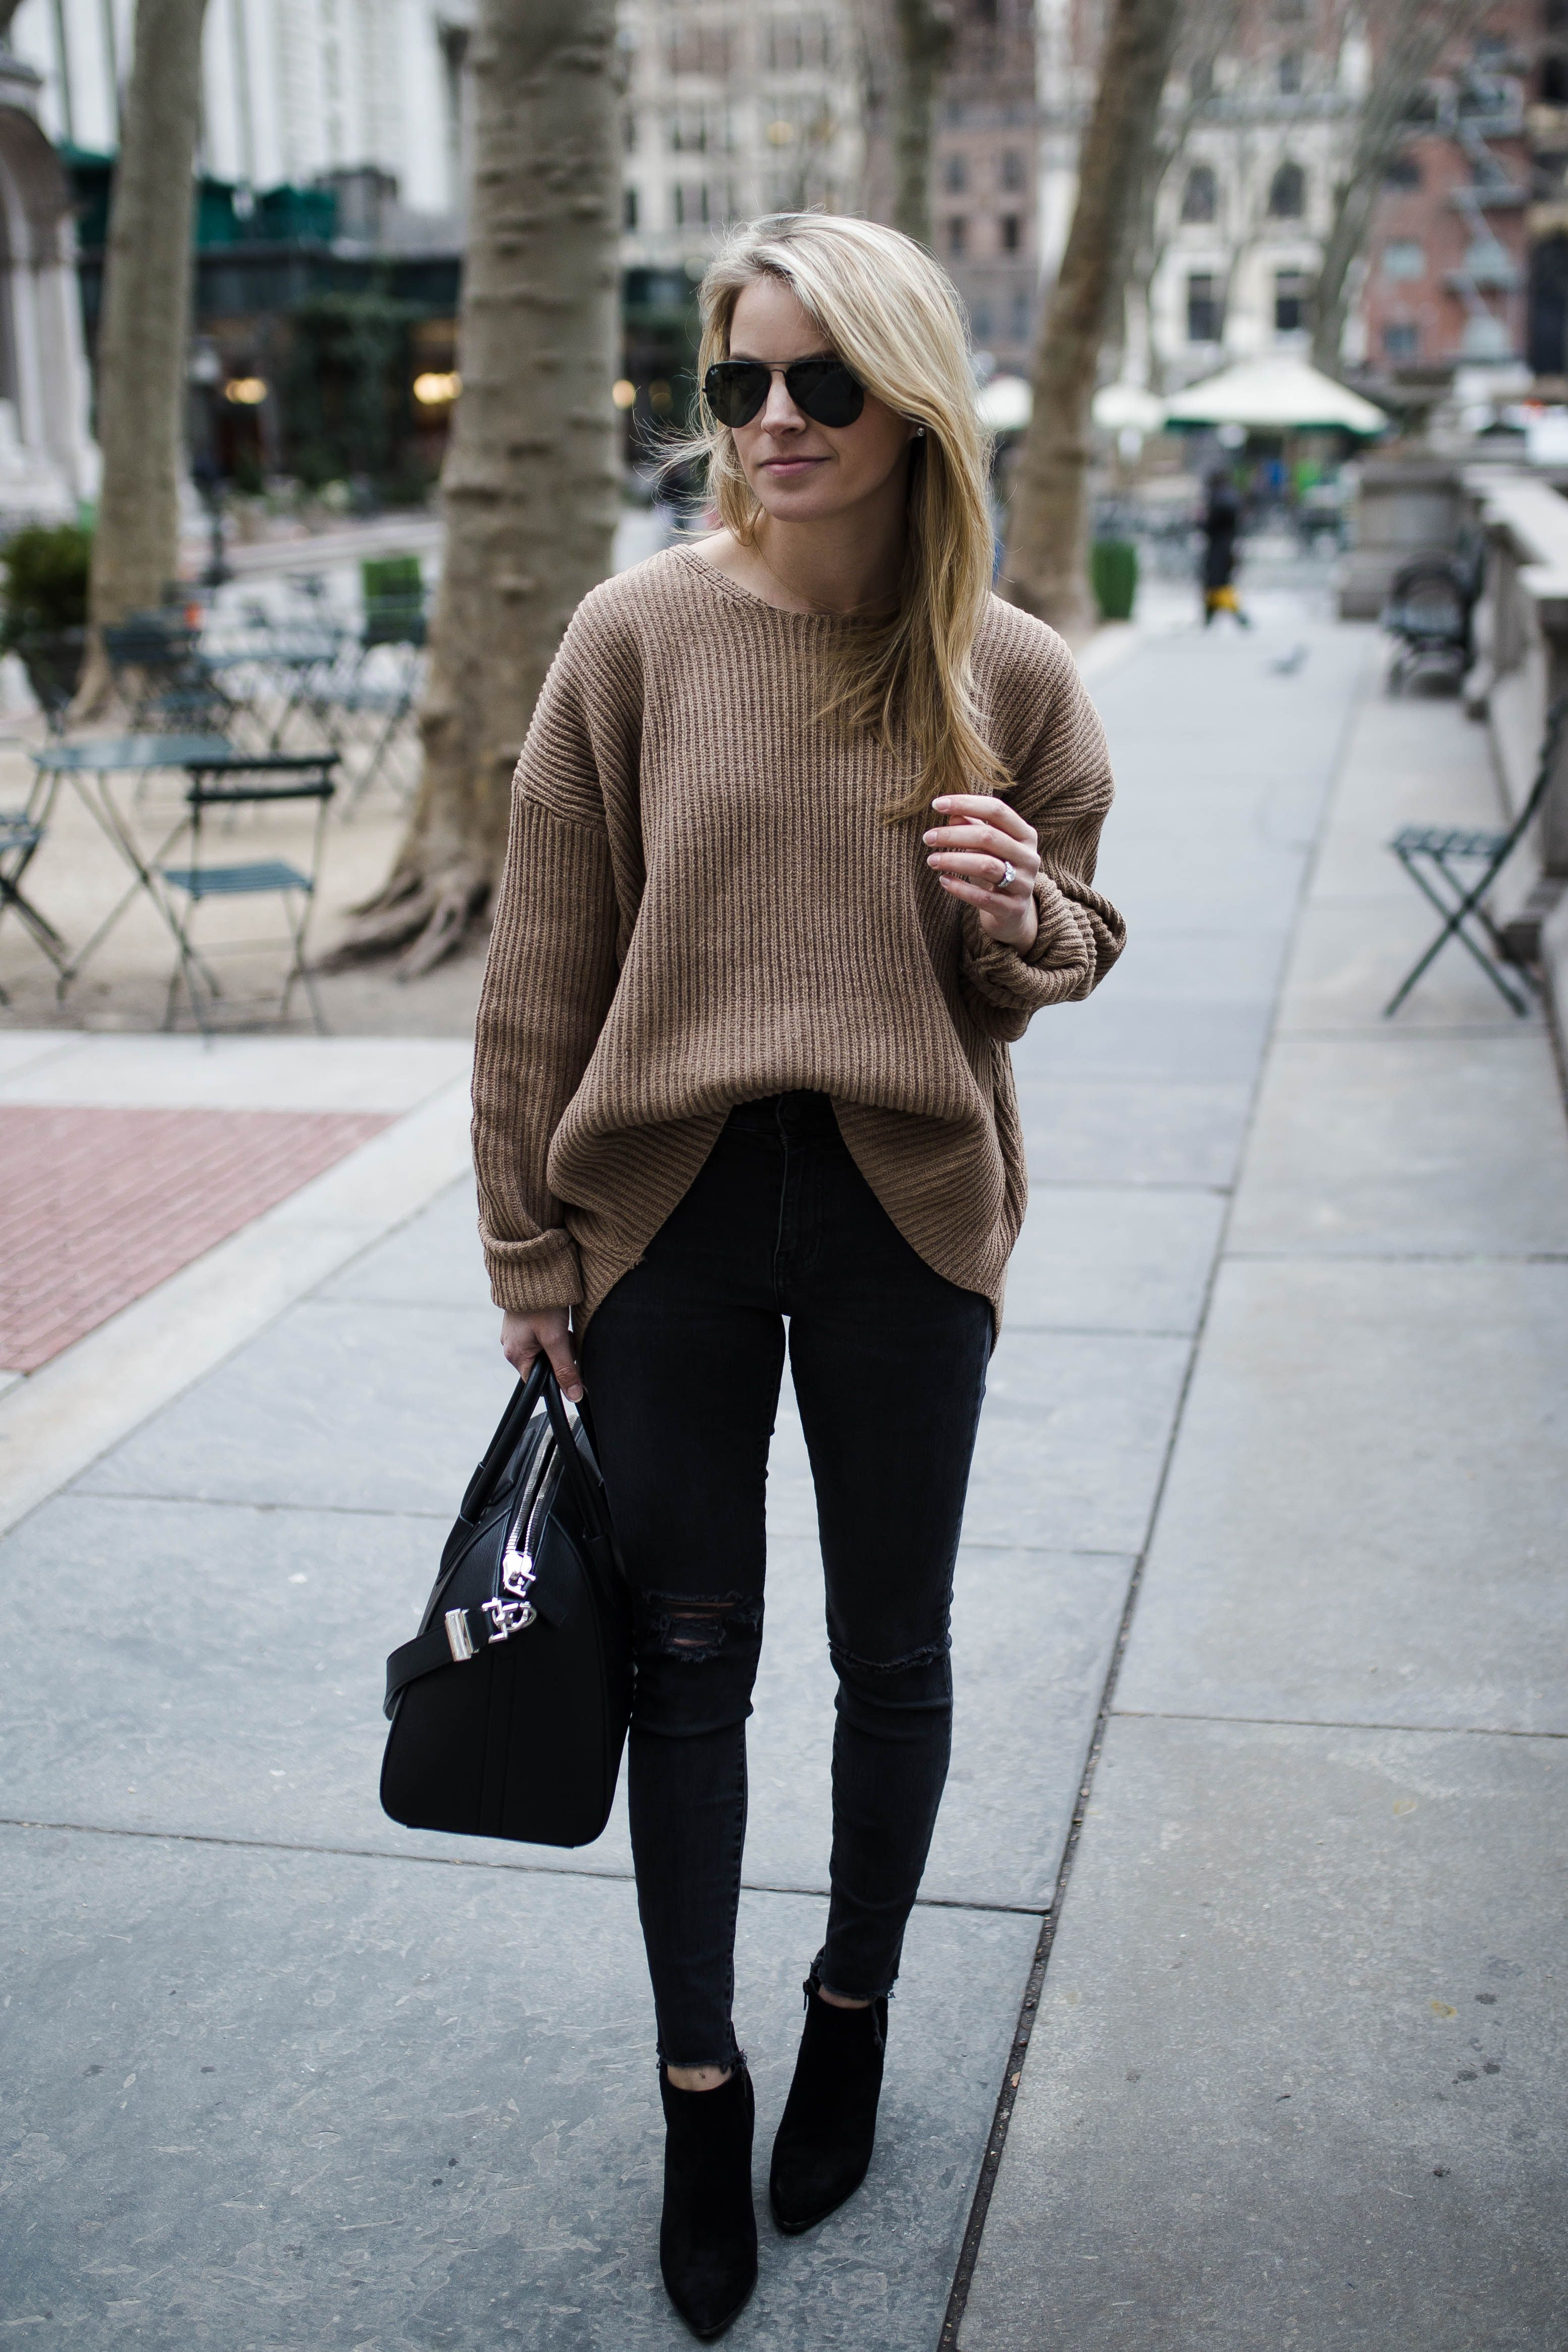 OVERSIZED SWEATER , Styled Snapshots. Oversized SweatersDistressed Skinny  JeansSuede